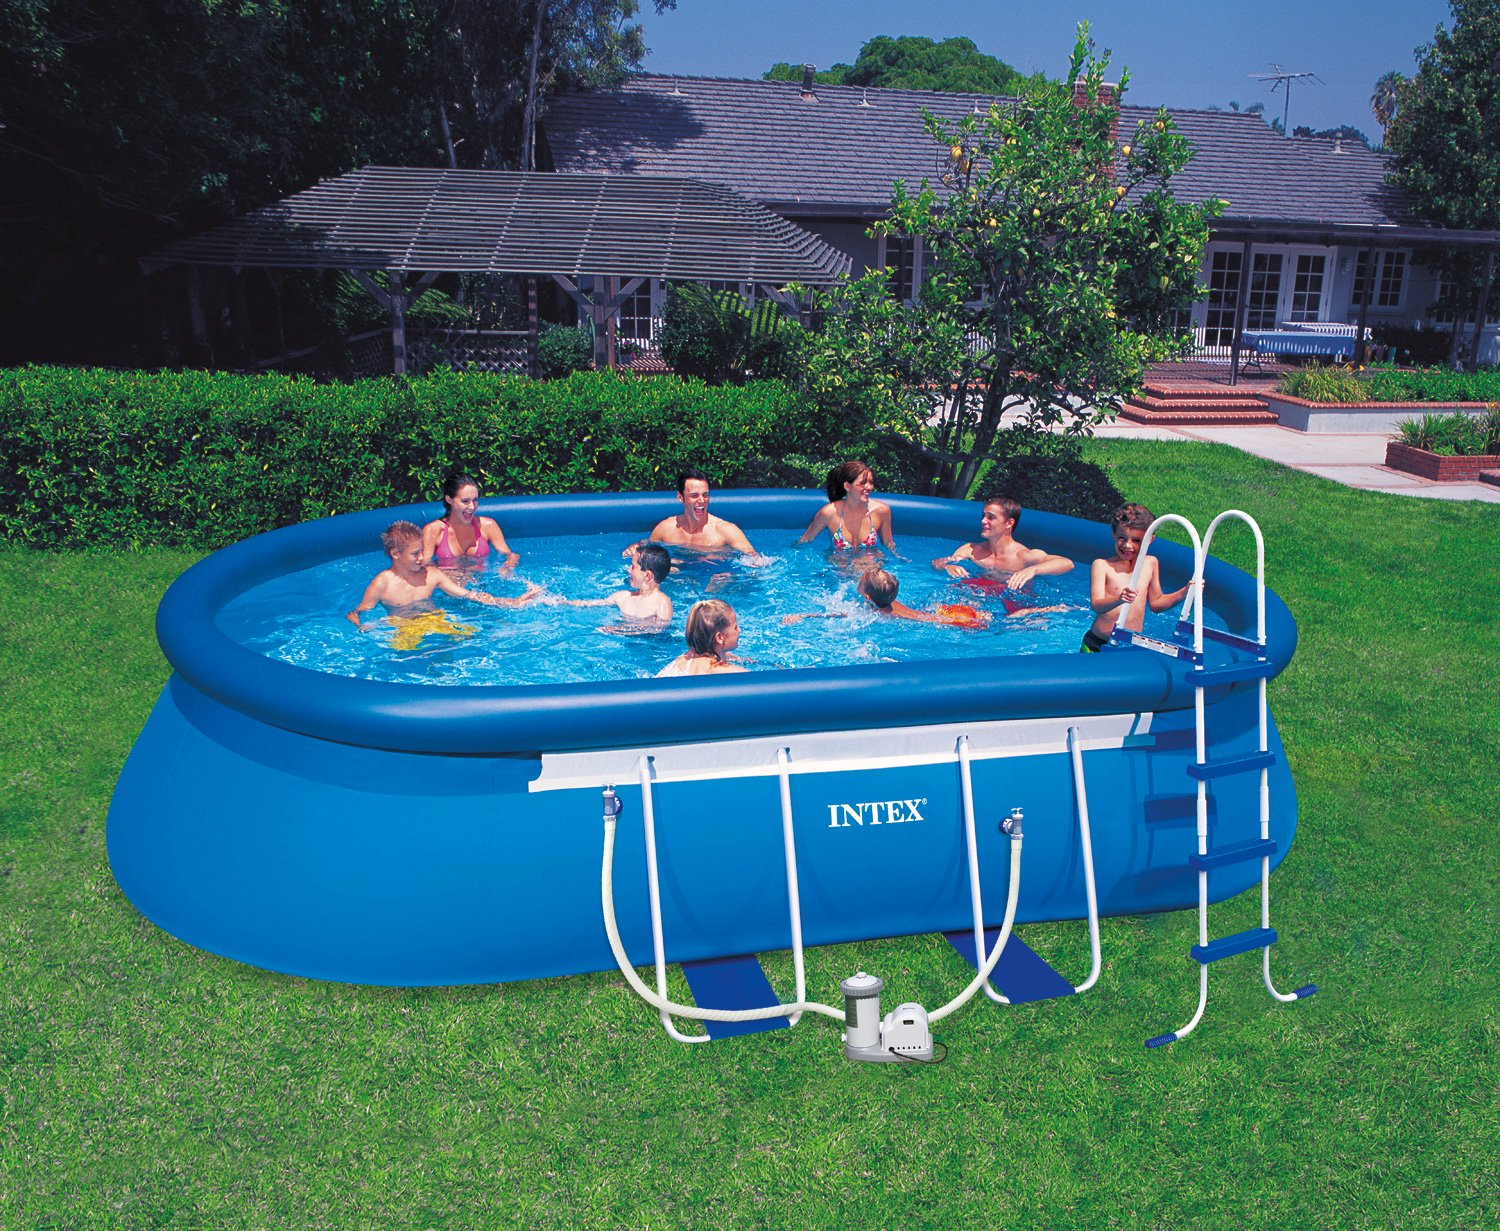 Intex Aufstellpool Oval Frame Pool Set, TÜV/GS, Blau, 610 x 366 x 122 cm